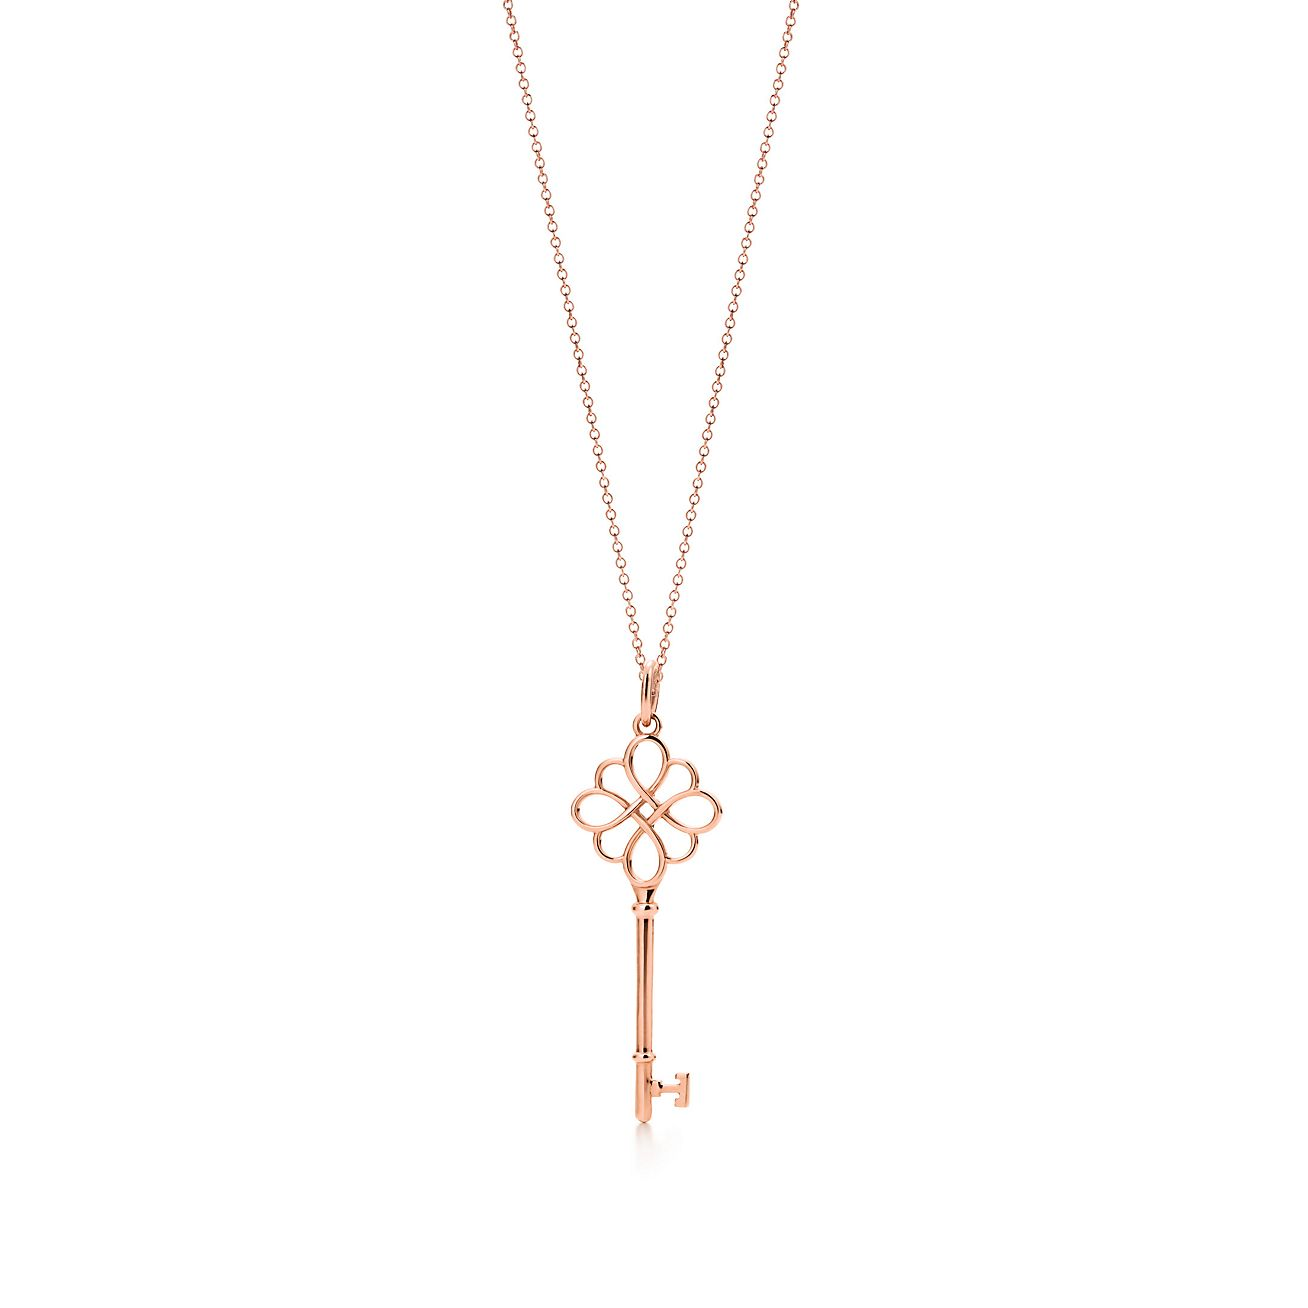 Tiffany keys knot key pendant in 18k rose gold on a chain tiffany keysknot key pendant aloadofball Gallery